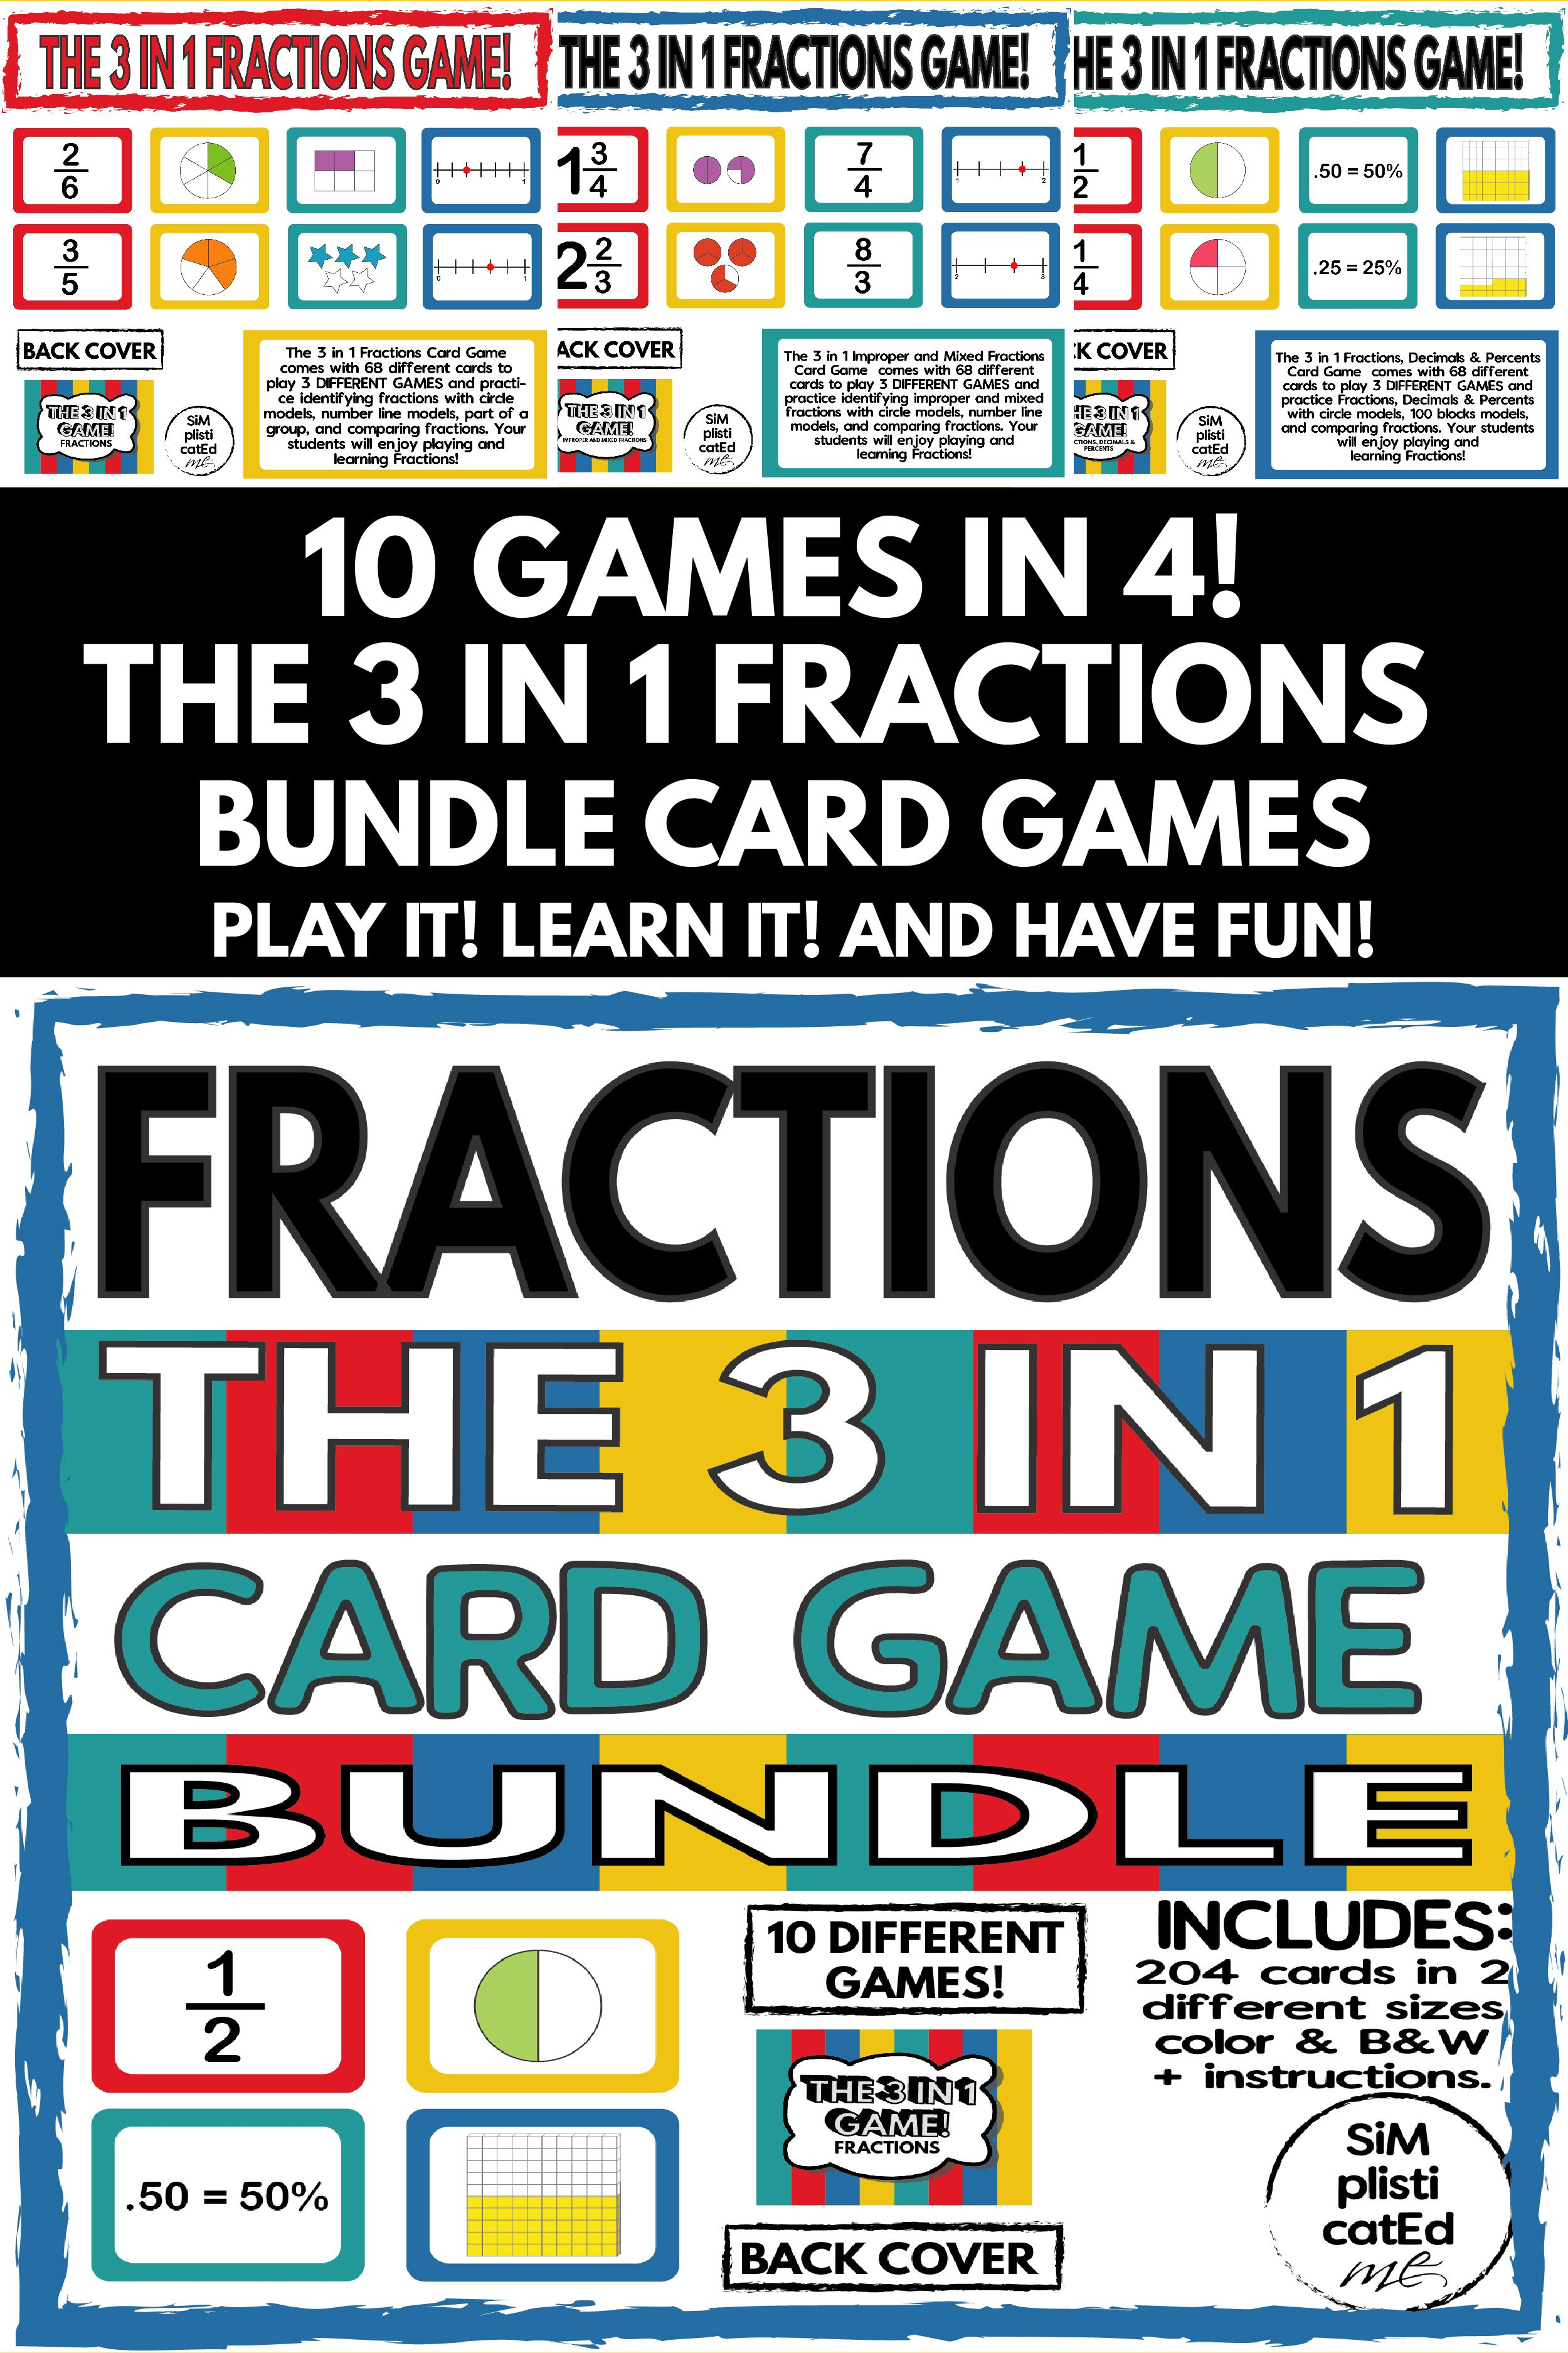 The 3 In 1 Fraction Games Bundle